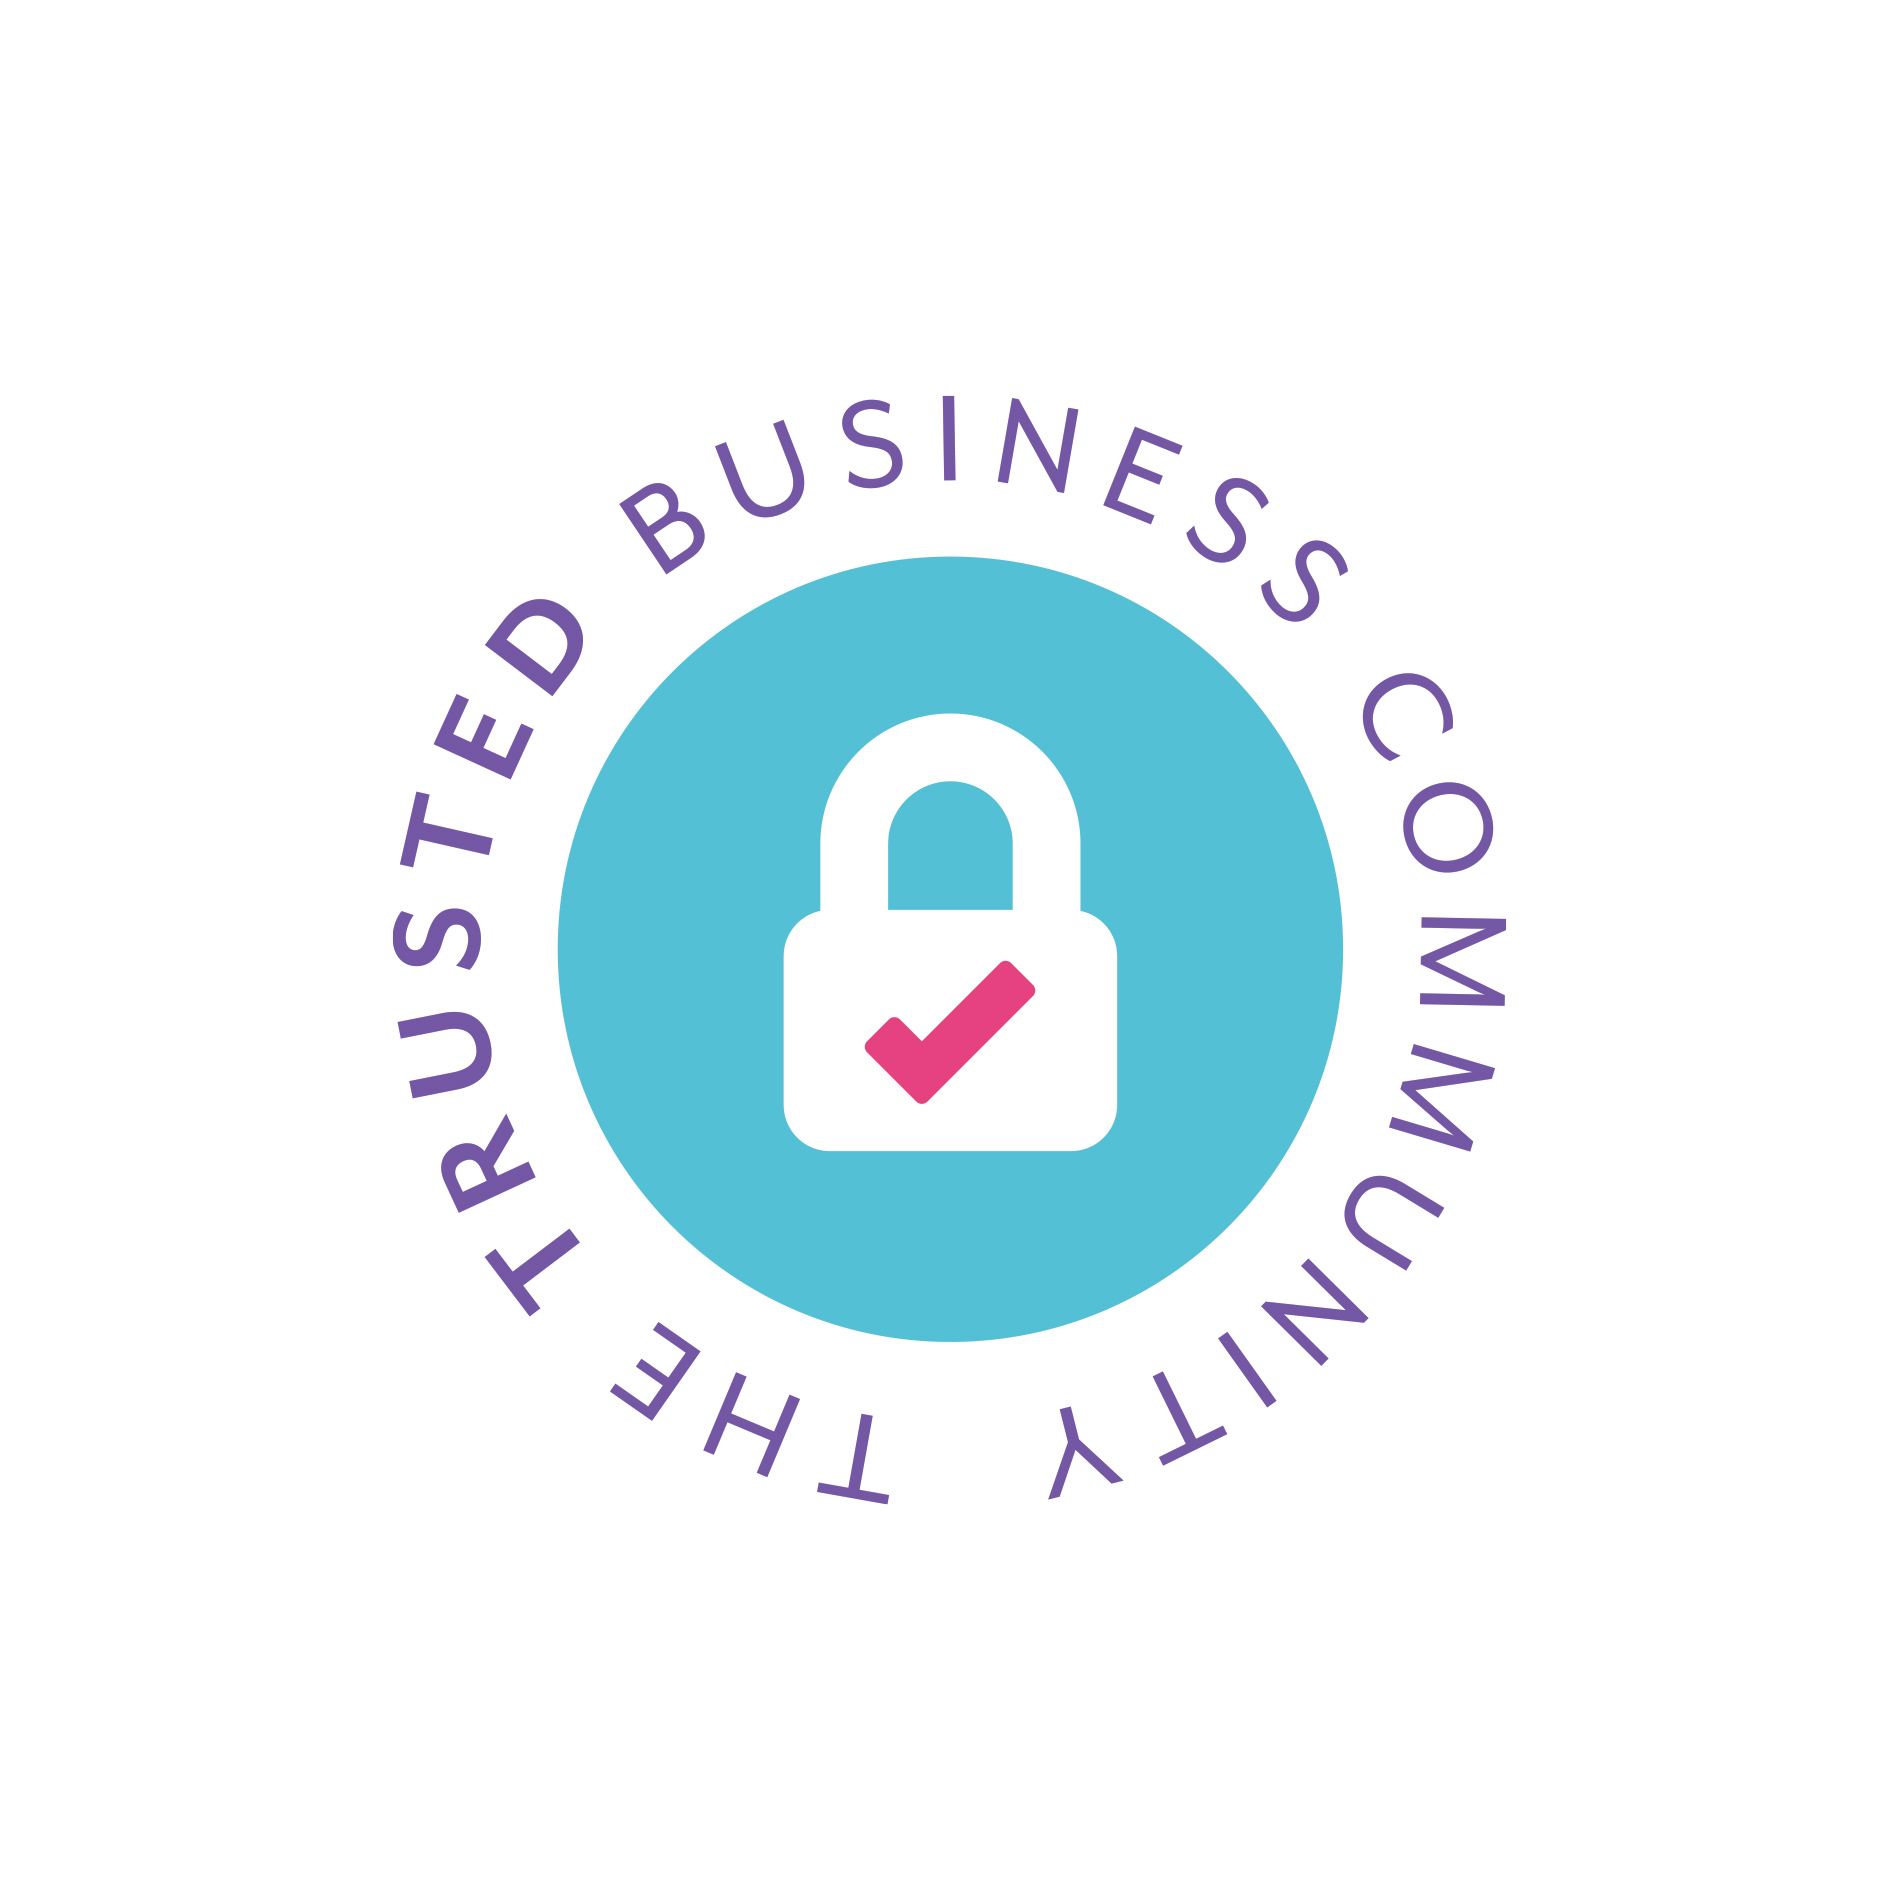 Trusted Business Community